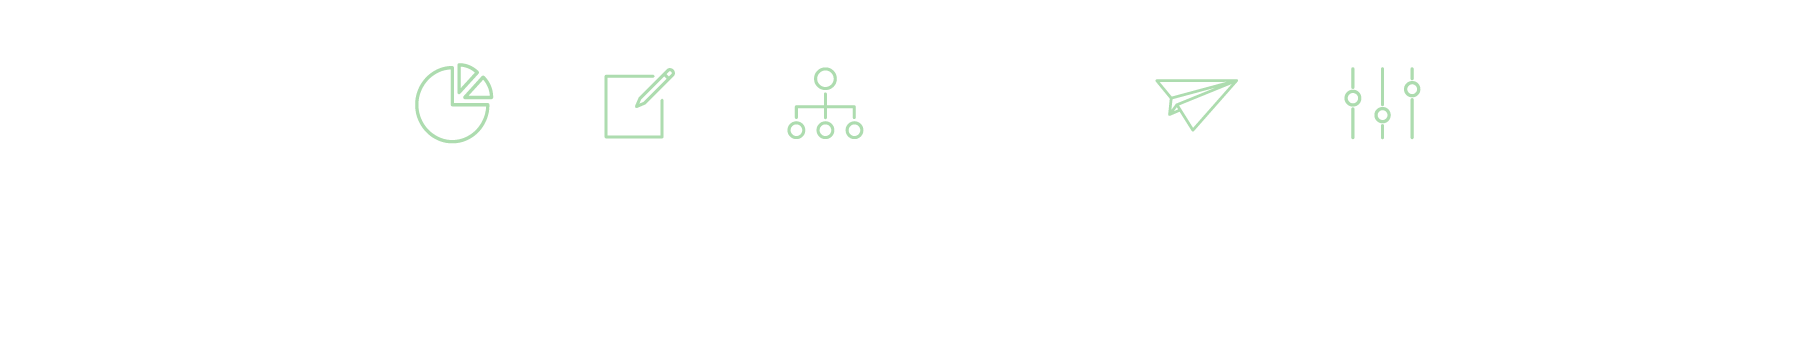 our approach_redesign methodology_build